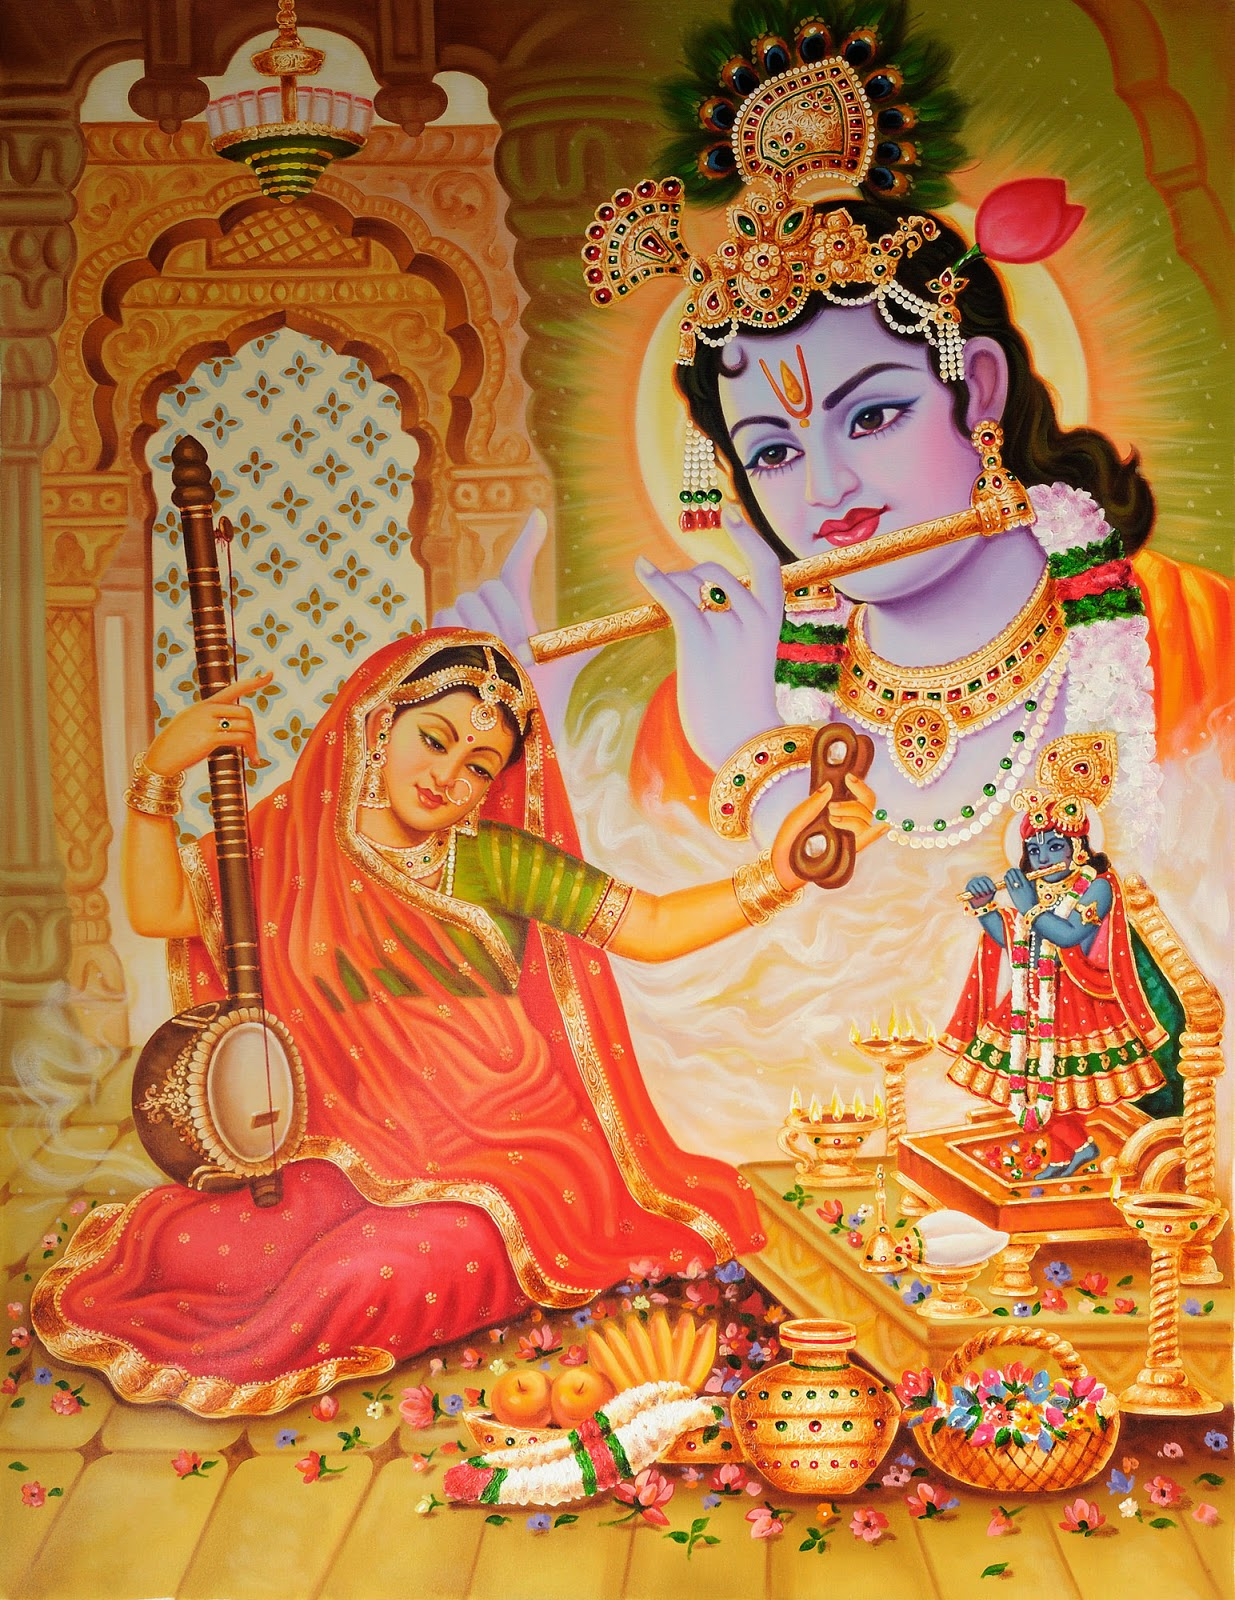 MeeraBia with Shree Krishna image